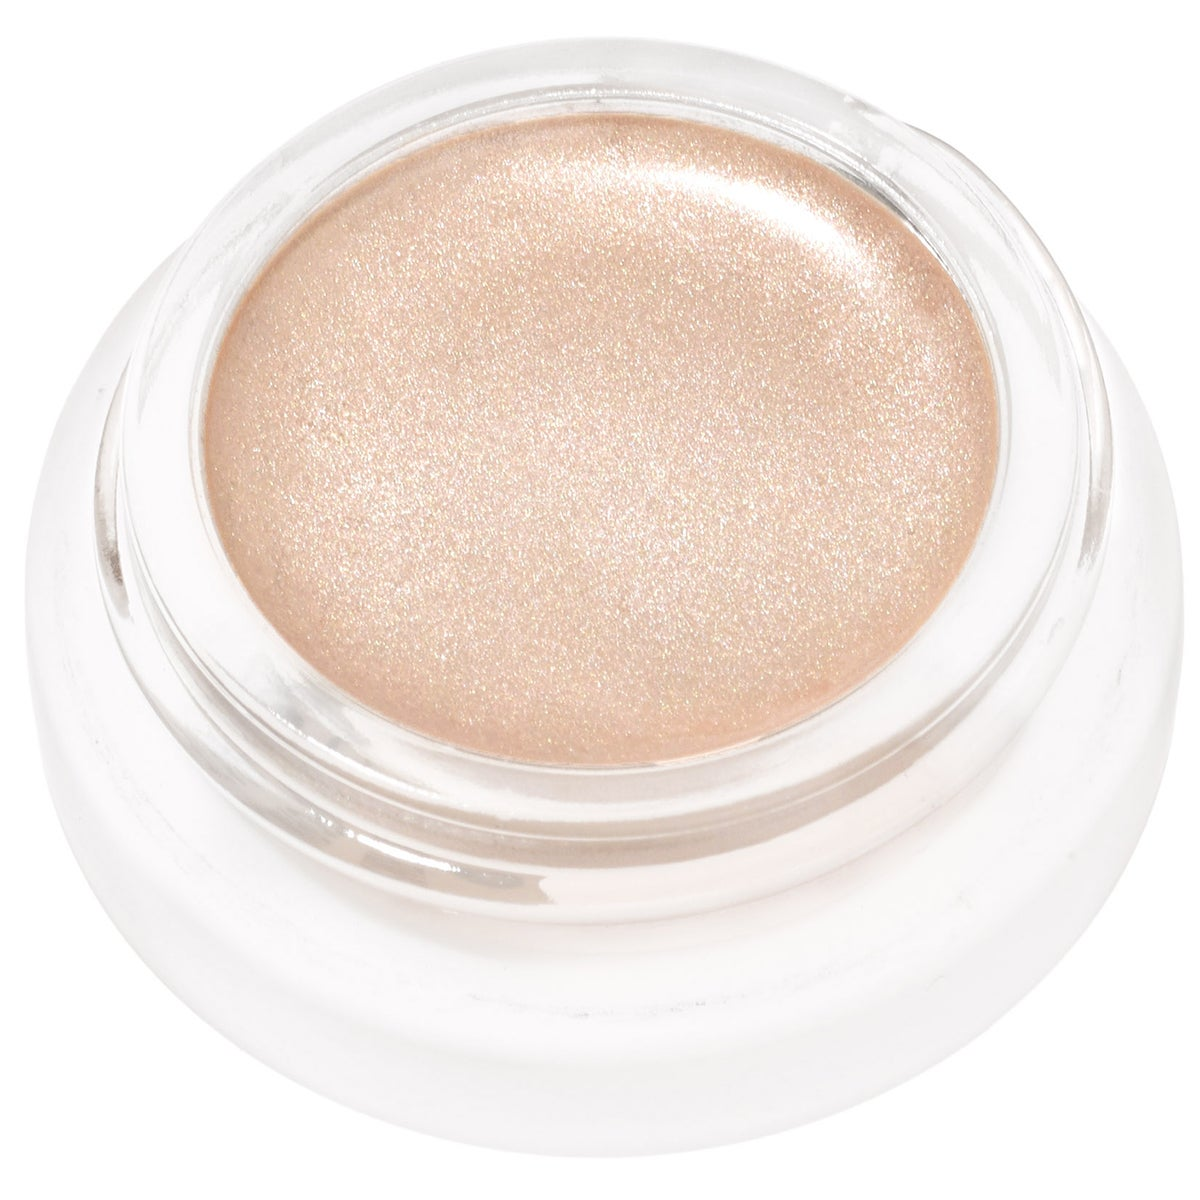 Magic Luminizer, 4.82 g rms beauty Highlighter